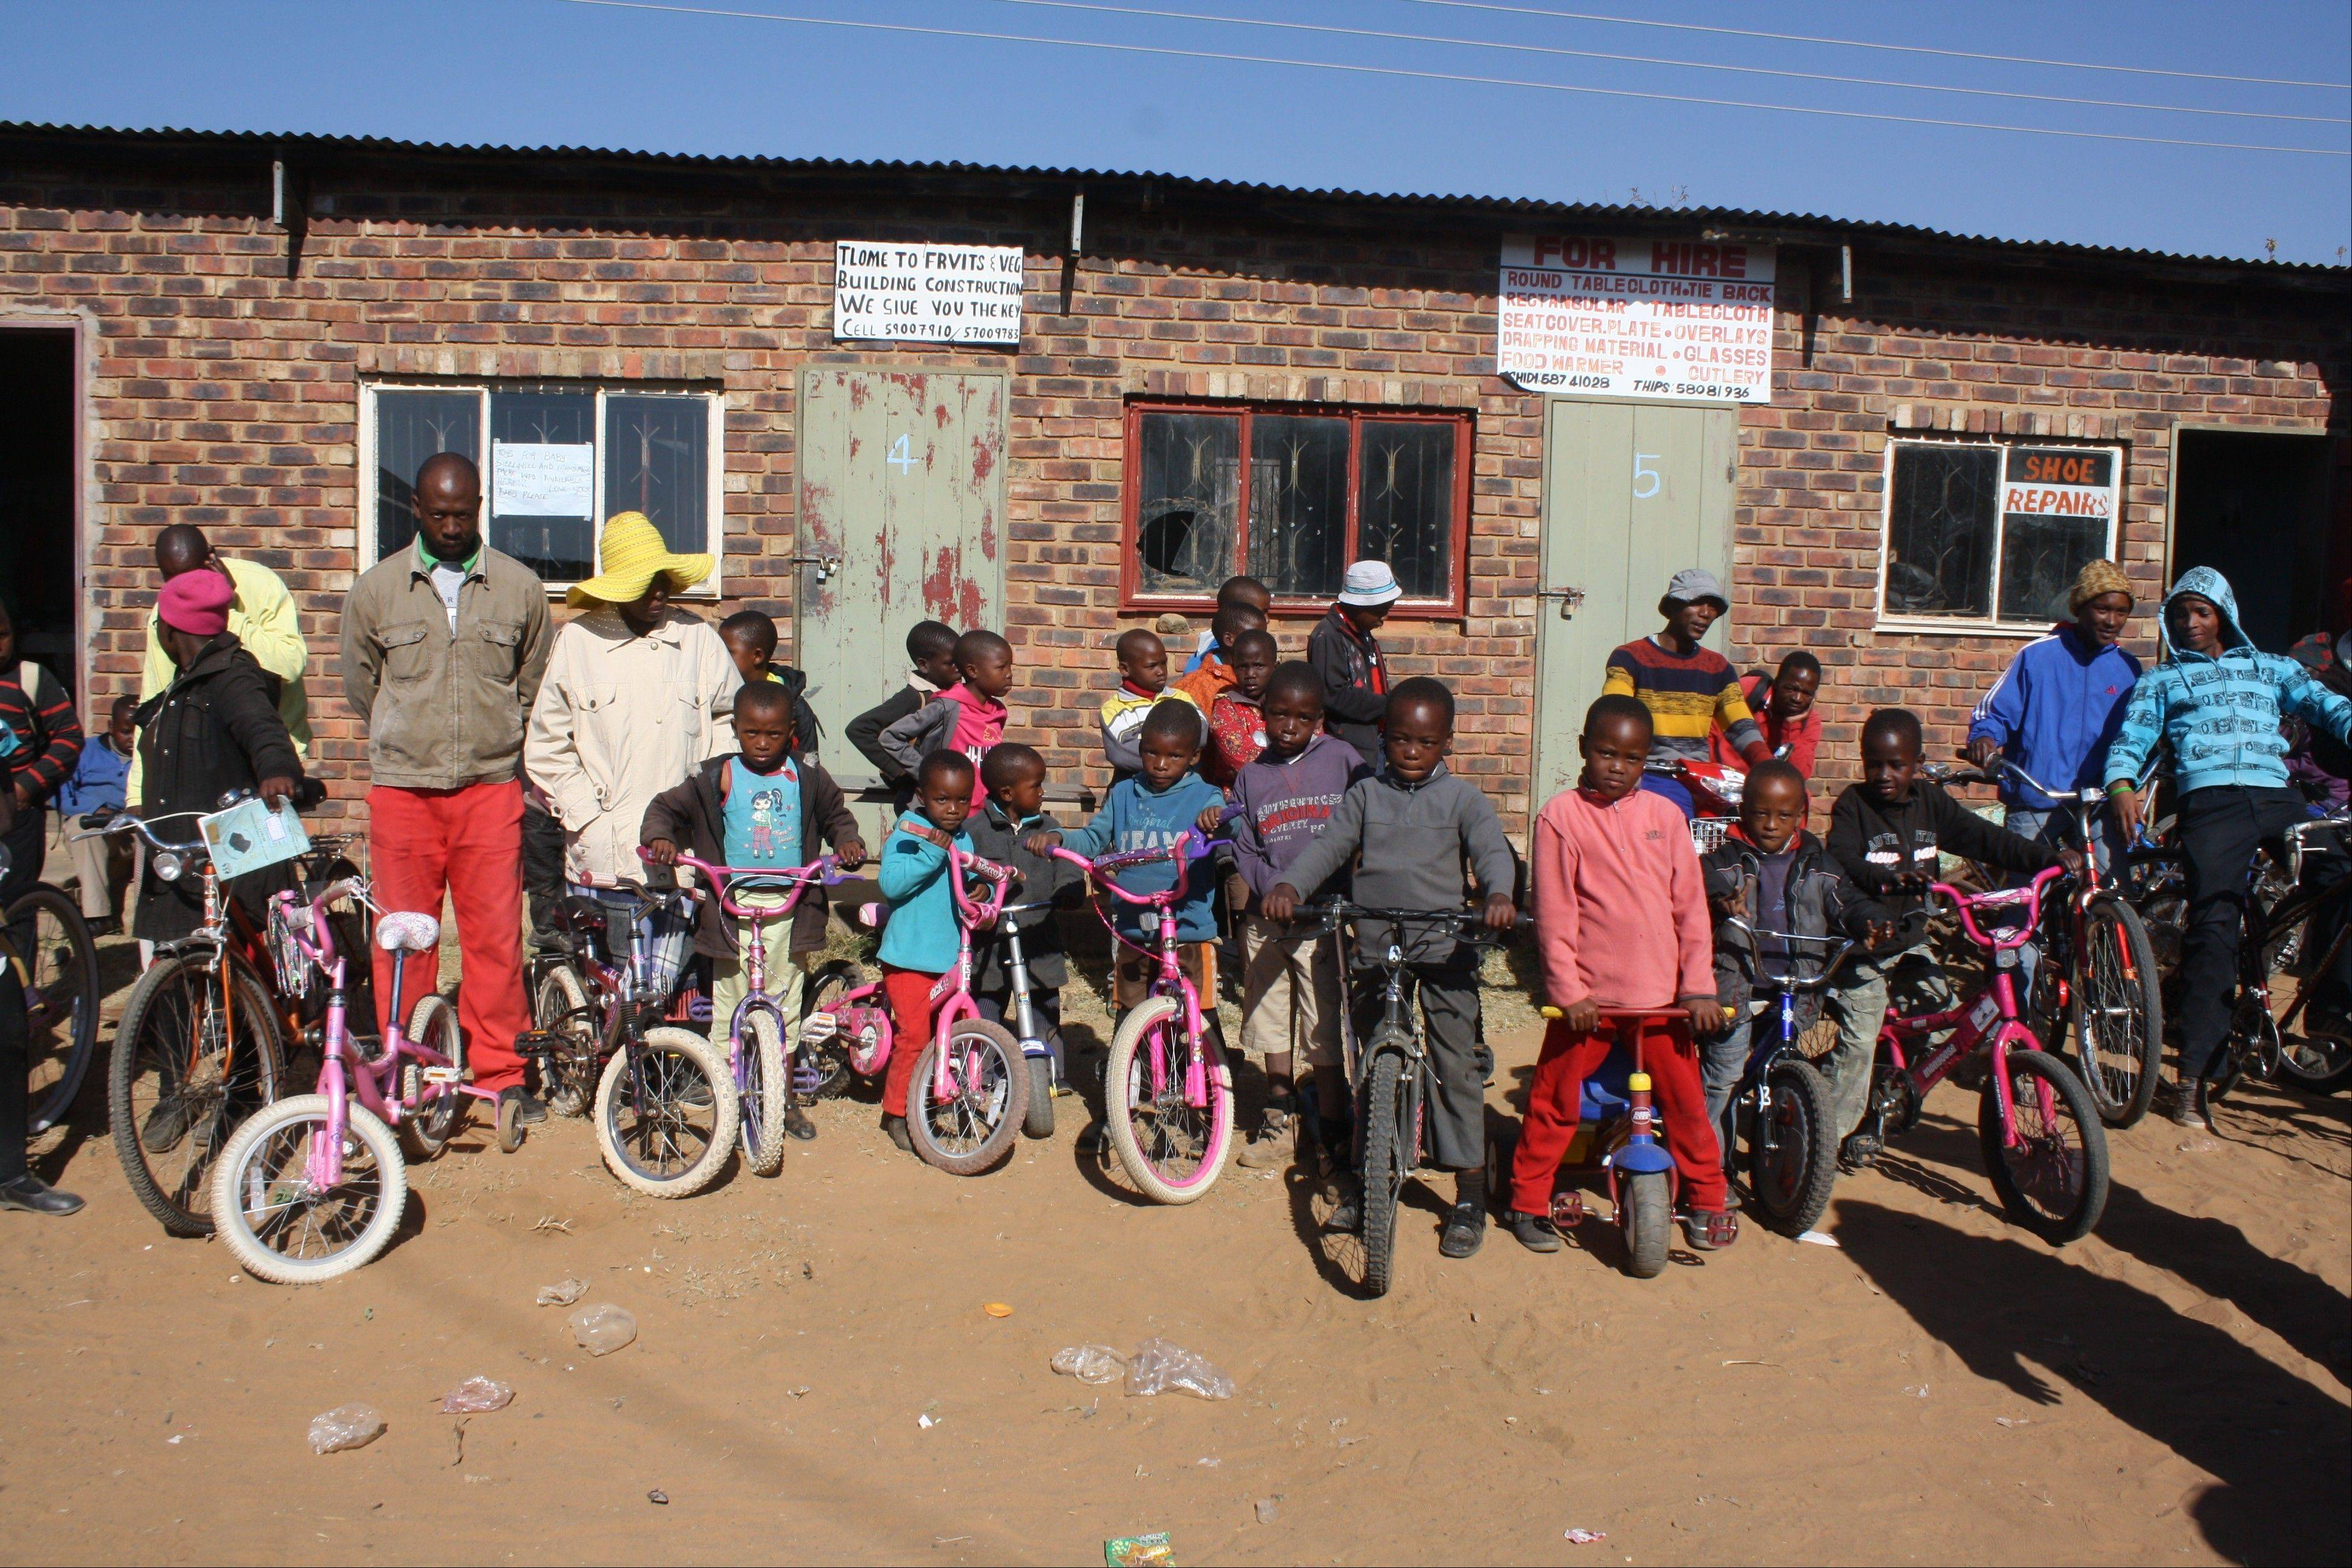 Bikes for Lesotho aims to send used, working bikes to the underprivileged kids in Lesotho, especially the 100,000 orphaned primarily by AIDS/HIV.